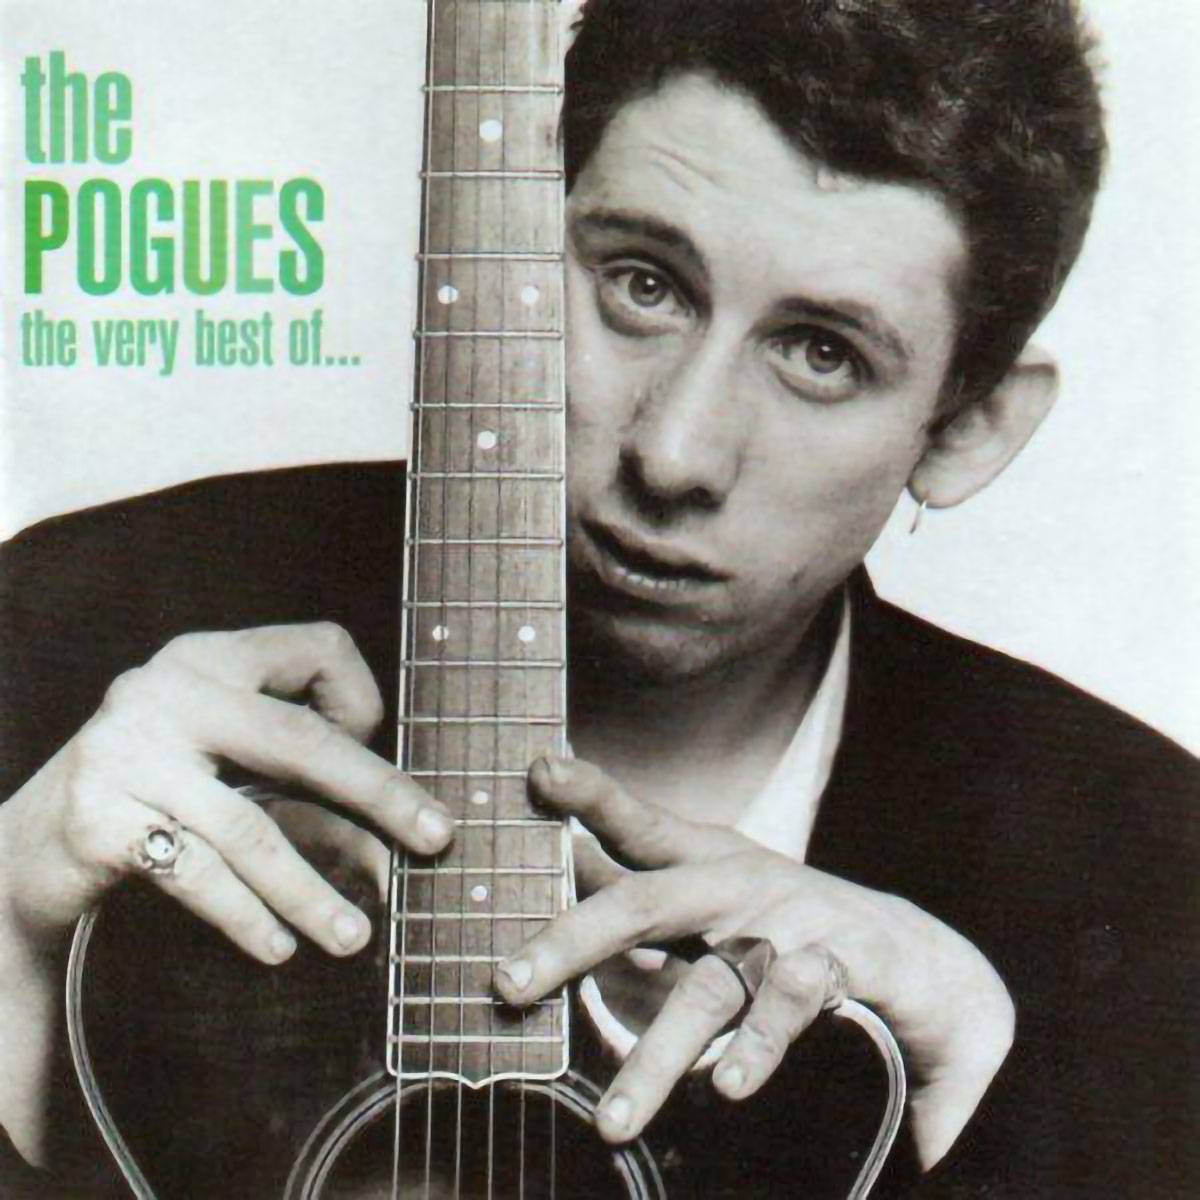 The Pogues - The Very Best Of...